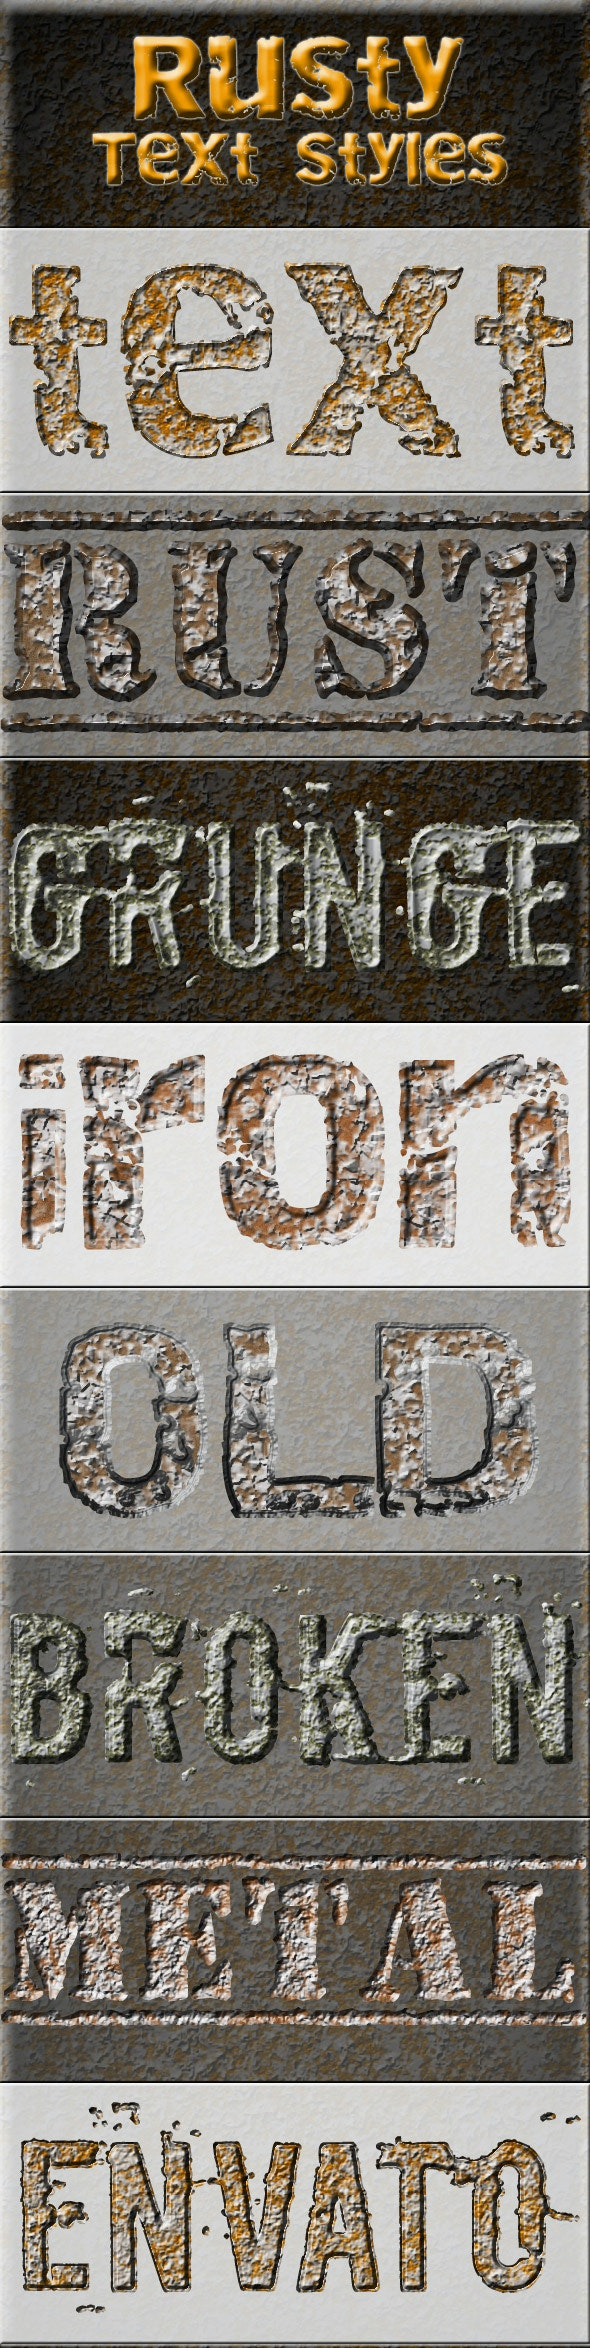 Rusty Text Styles - Text Effects Styles